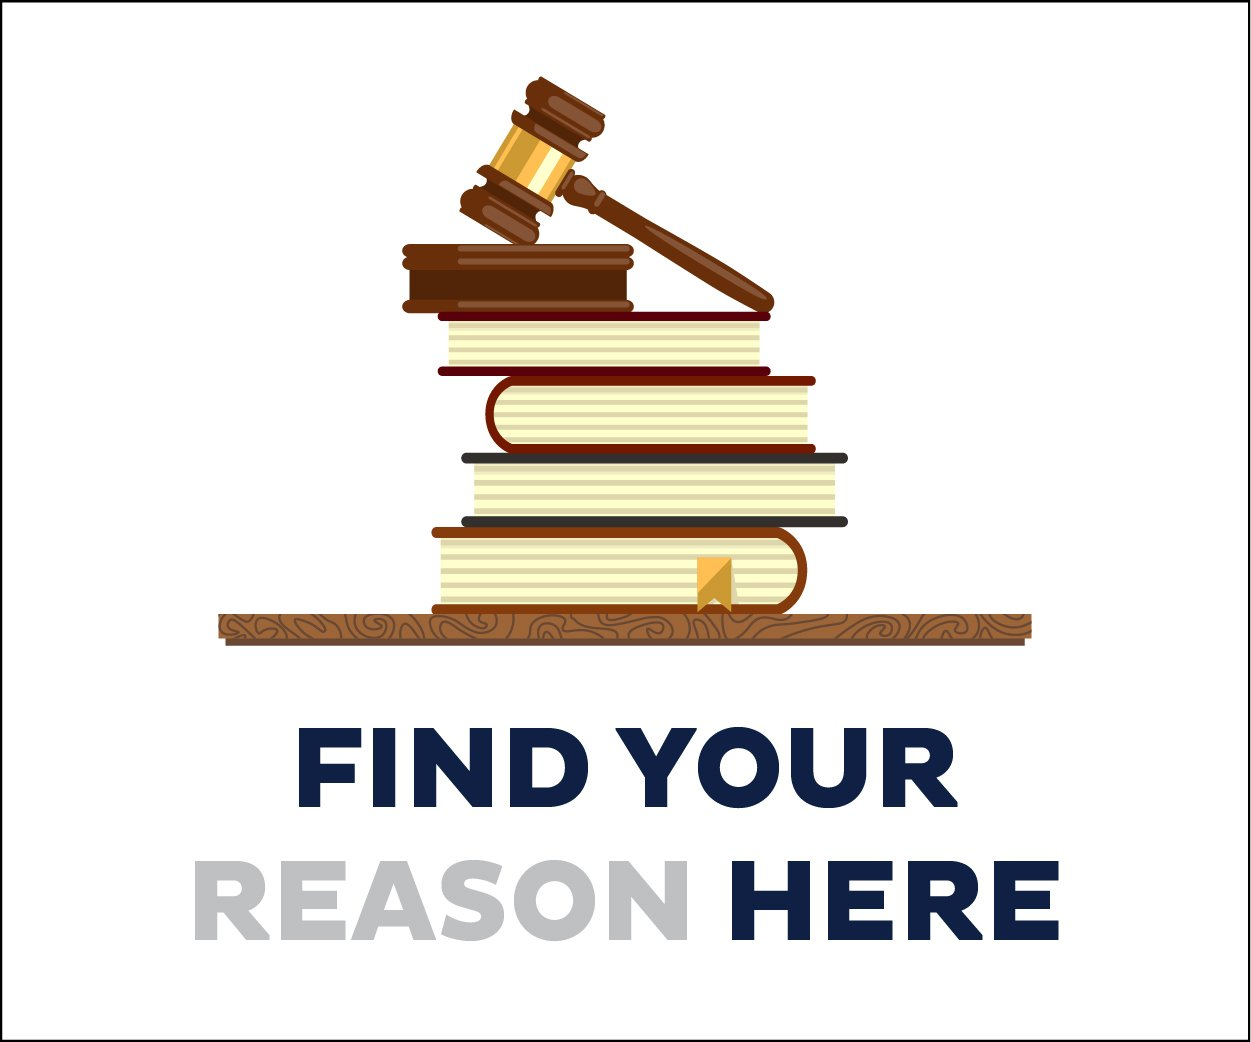 Graphic of books with gavel and text that says Find Your Reason Here